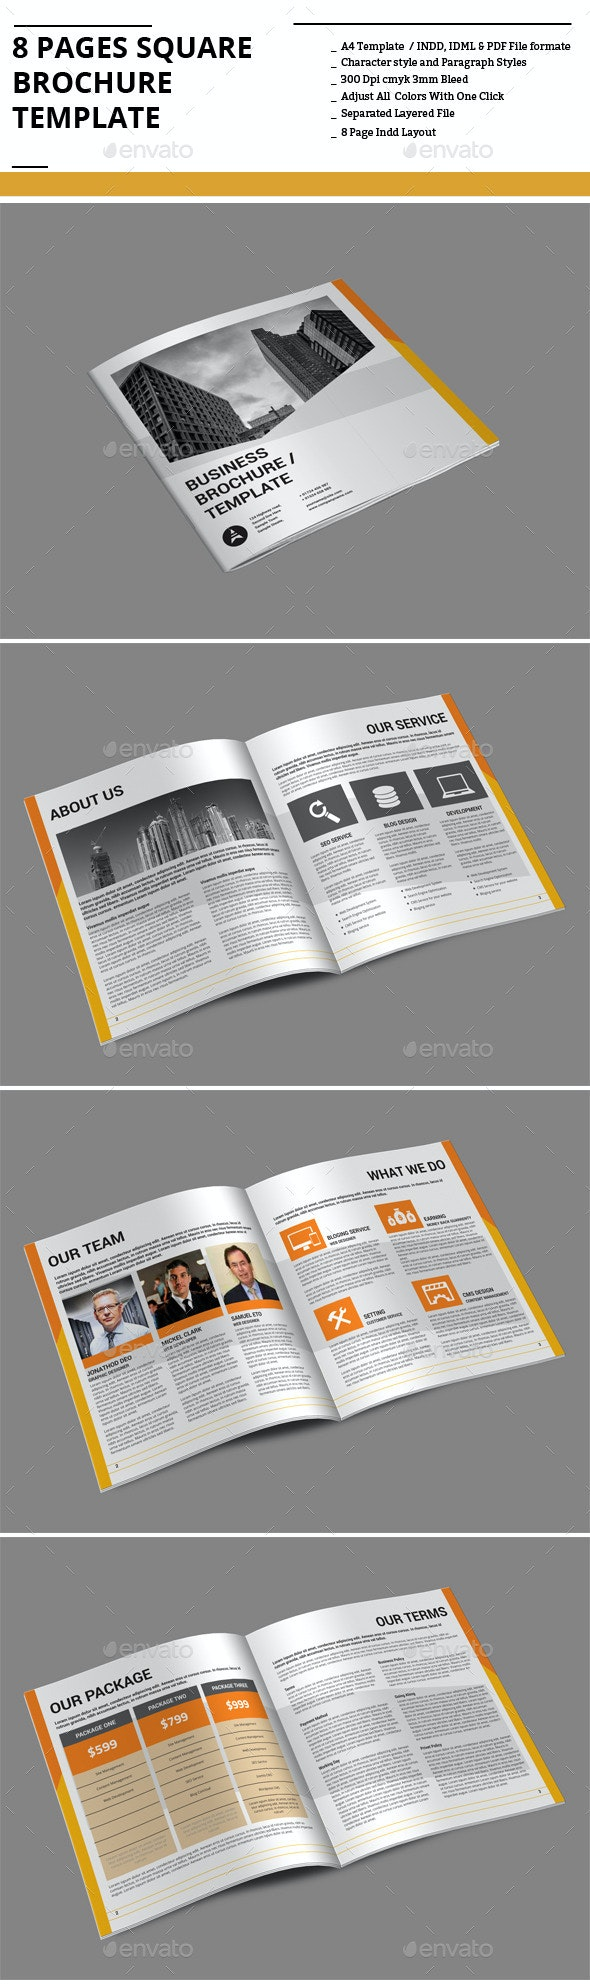 8 Pages Square Brochure Template - Corporate Brochures